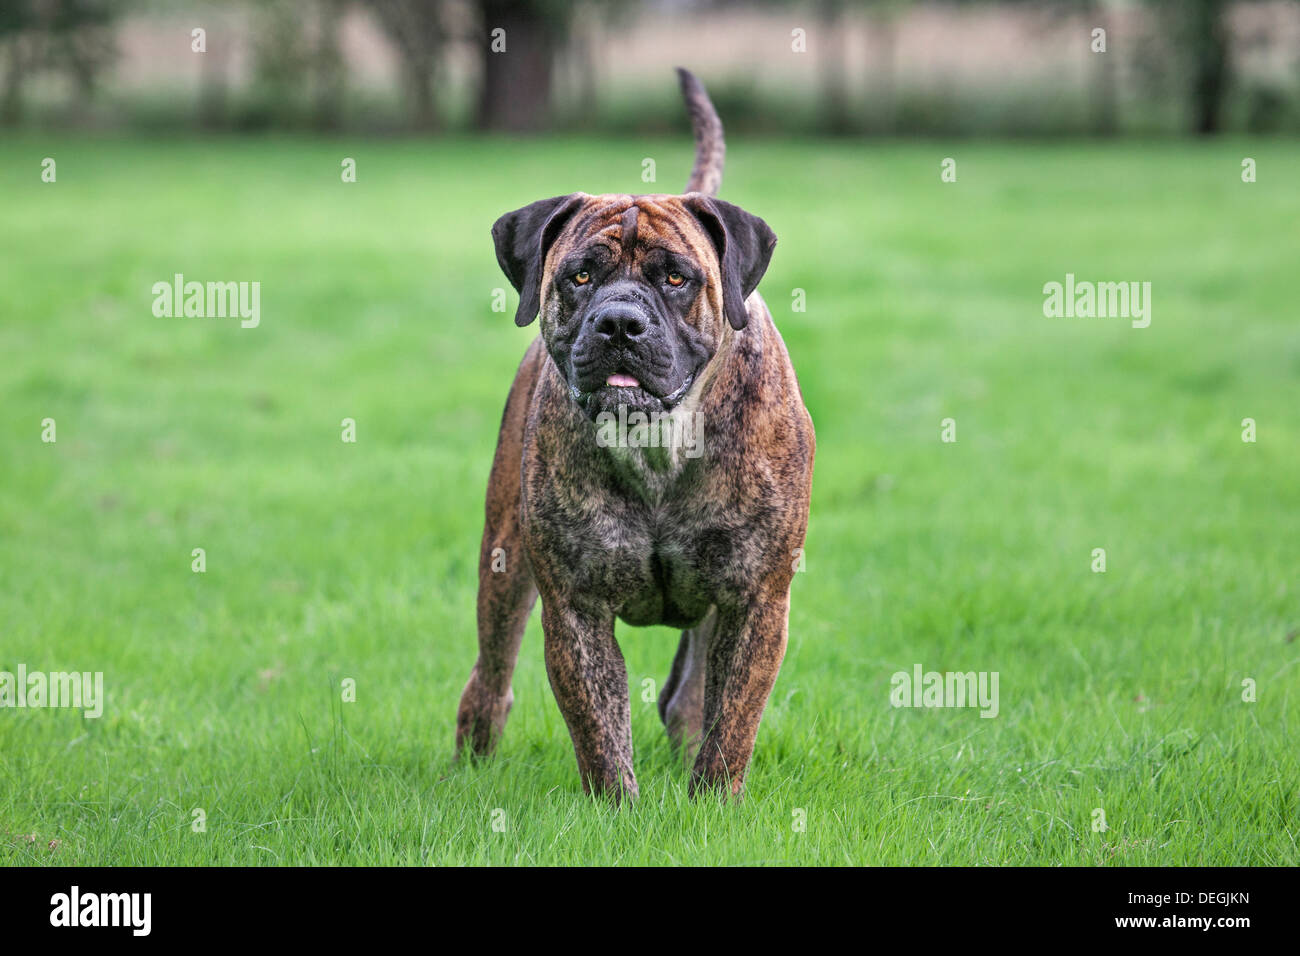 Boerboel, mastiff dog breed from South Africa in garden - Stock Image